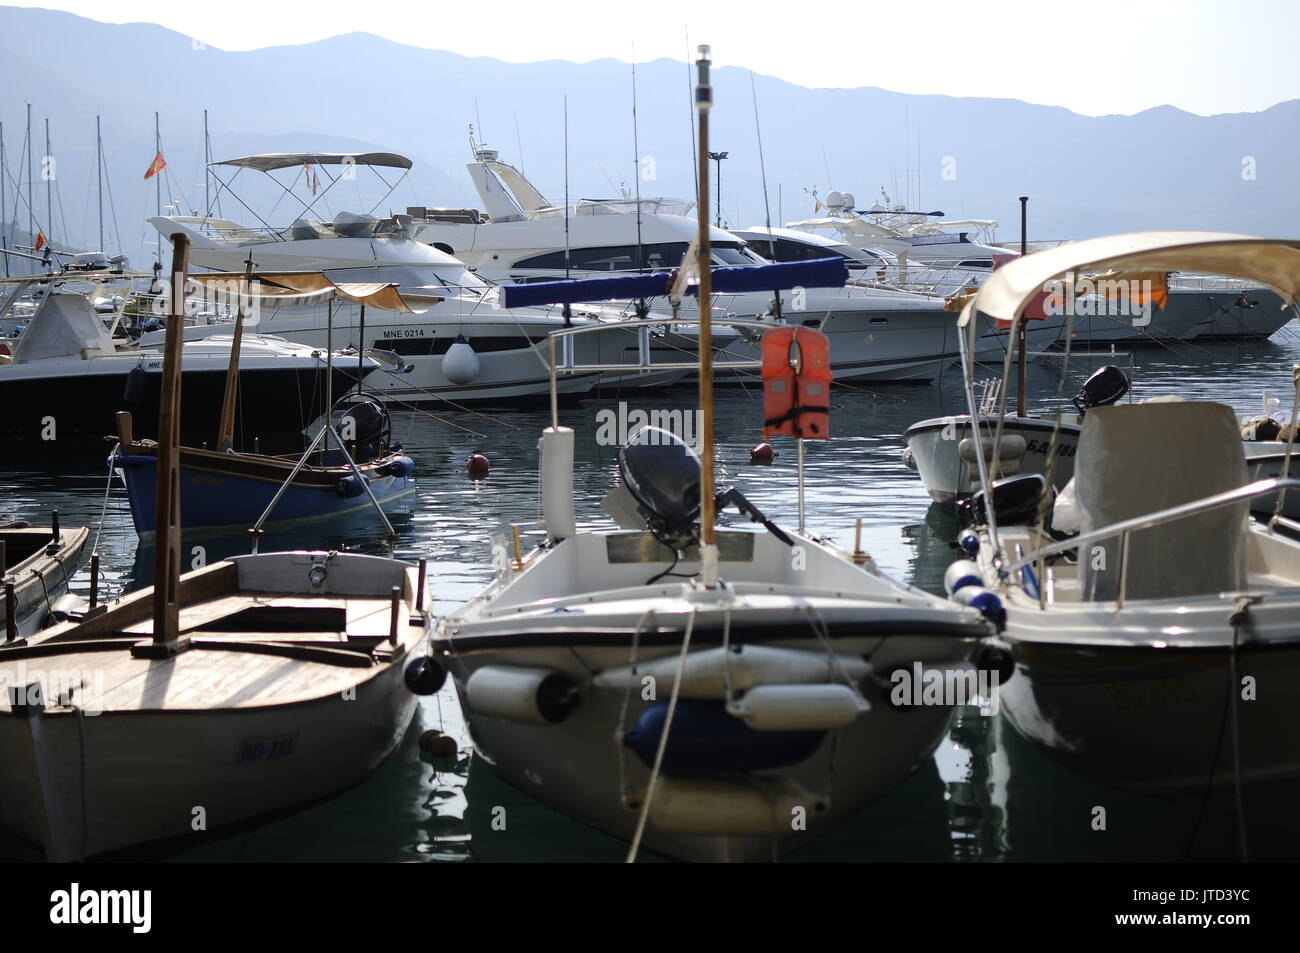 Local sea scenes from Budva city in Montenegro - Stock Image